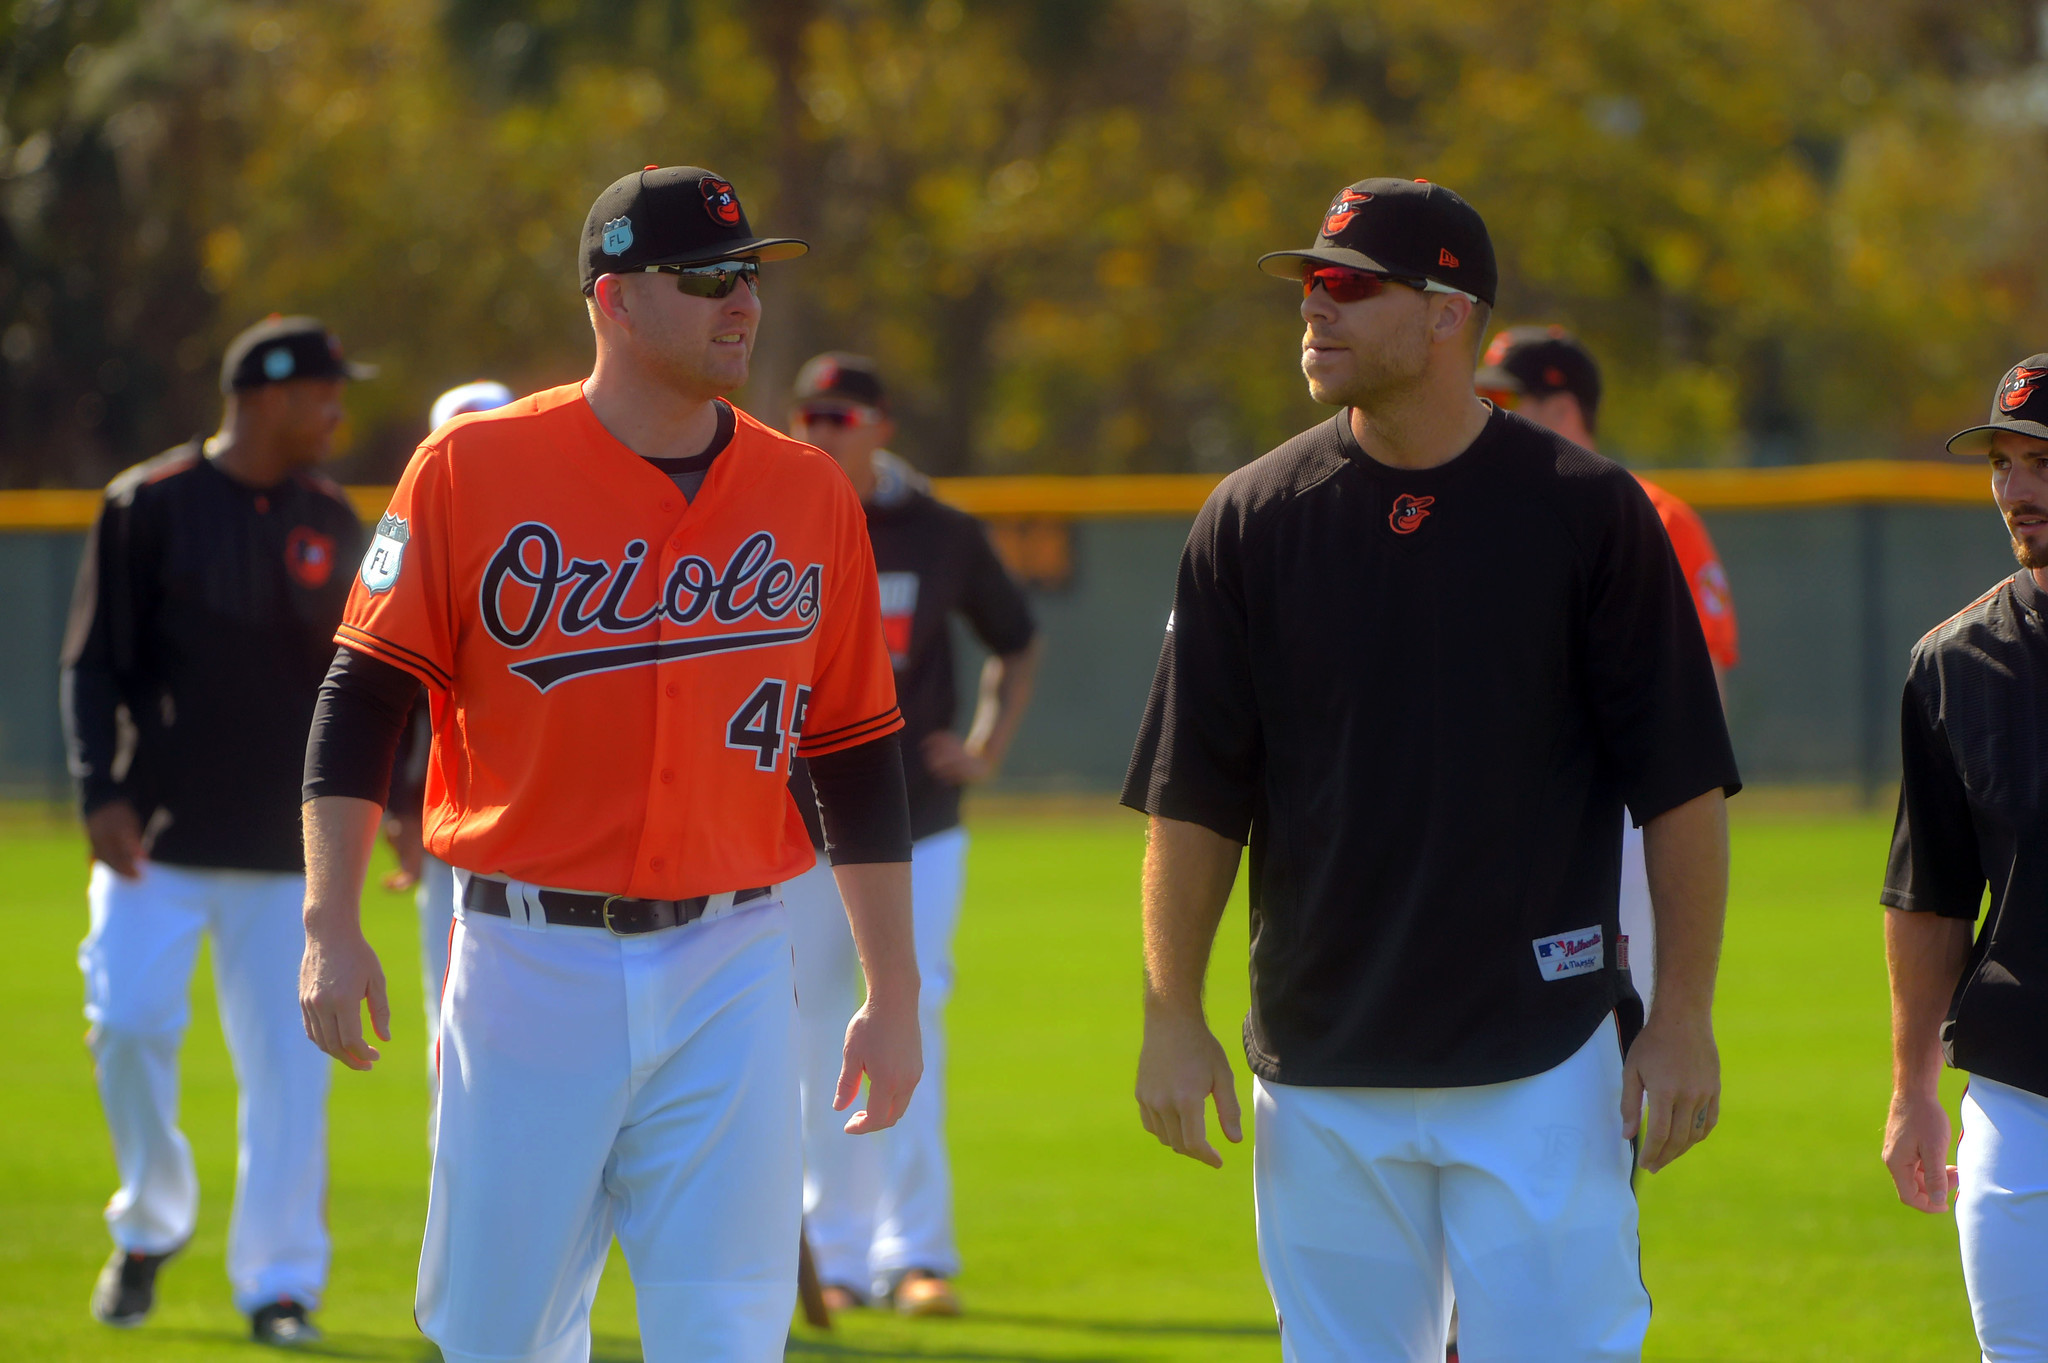 Bal-slow-spring-starts-growing-more-significant-for-orioles-chris-davis-mark-trumbo-j-j-hardy-20170321